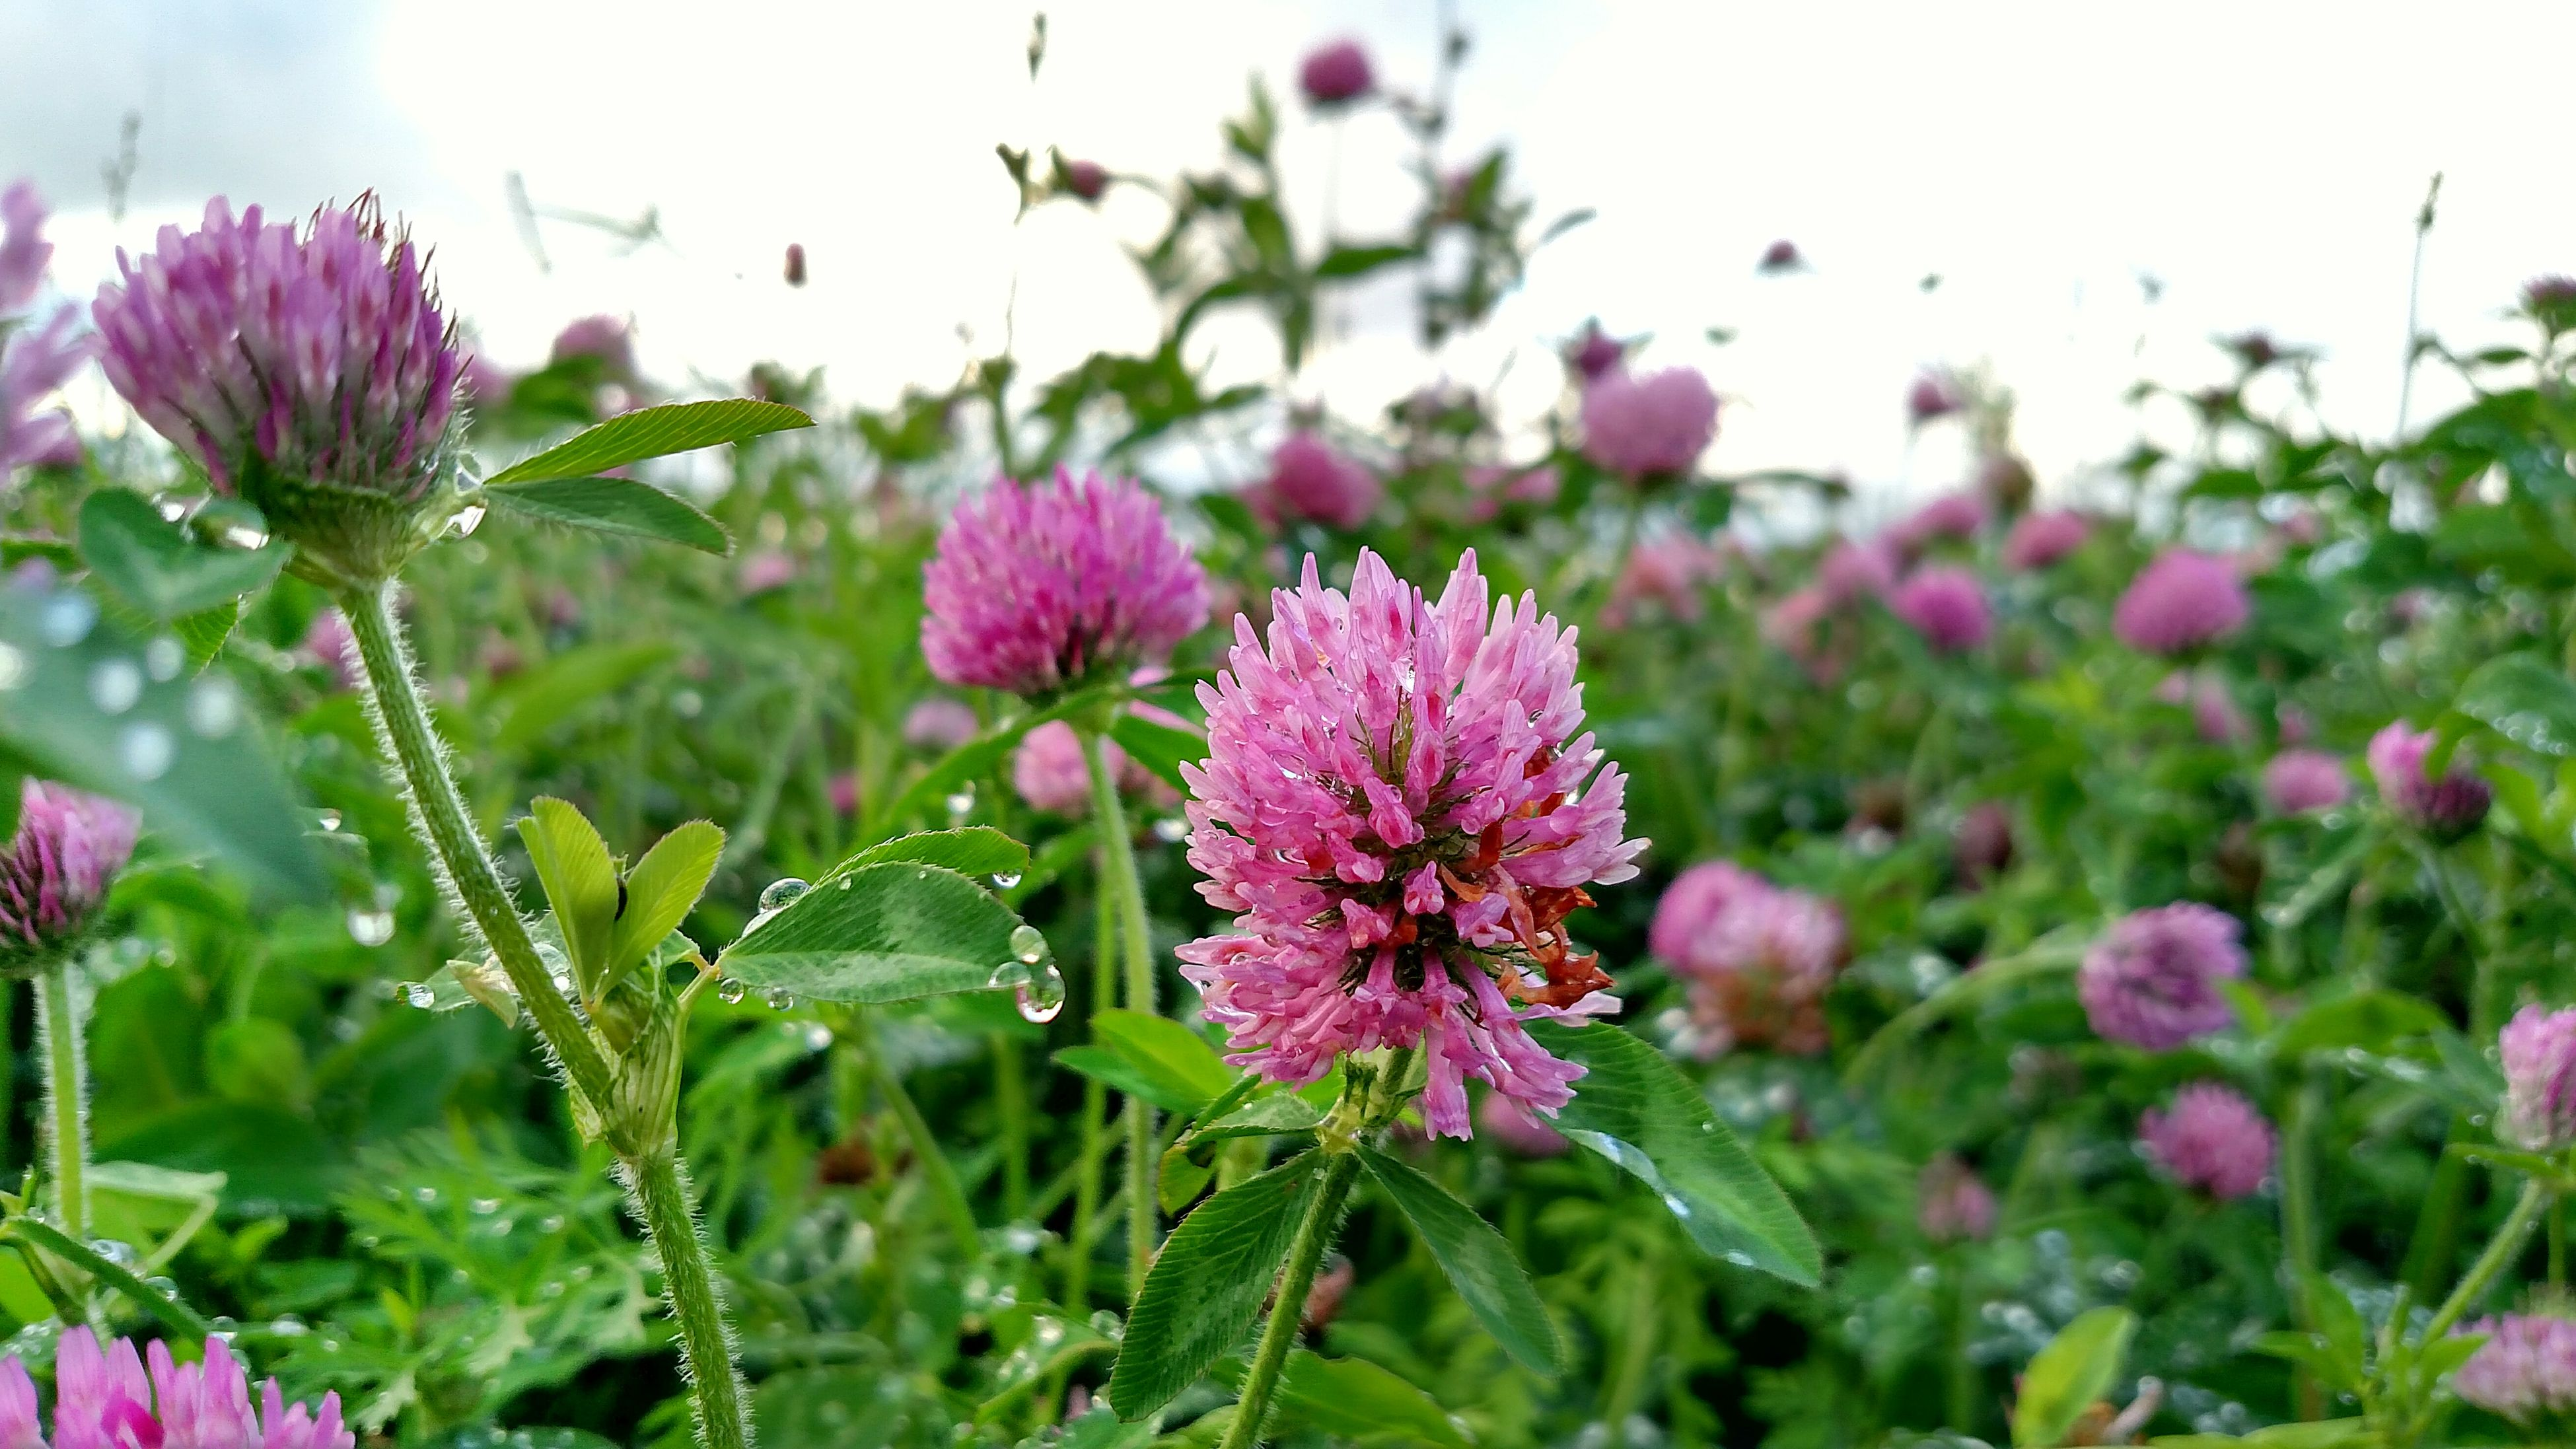 flower, freshness, fragility, pink color, growth, beauty in nature, focus on foreground, petal, plant, flower head, nature, blooming, close-up, stem, in bloom, field, selective focus, day, outdoors, blossom